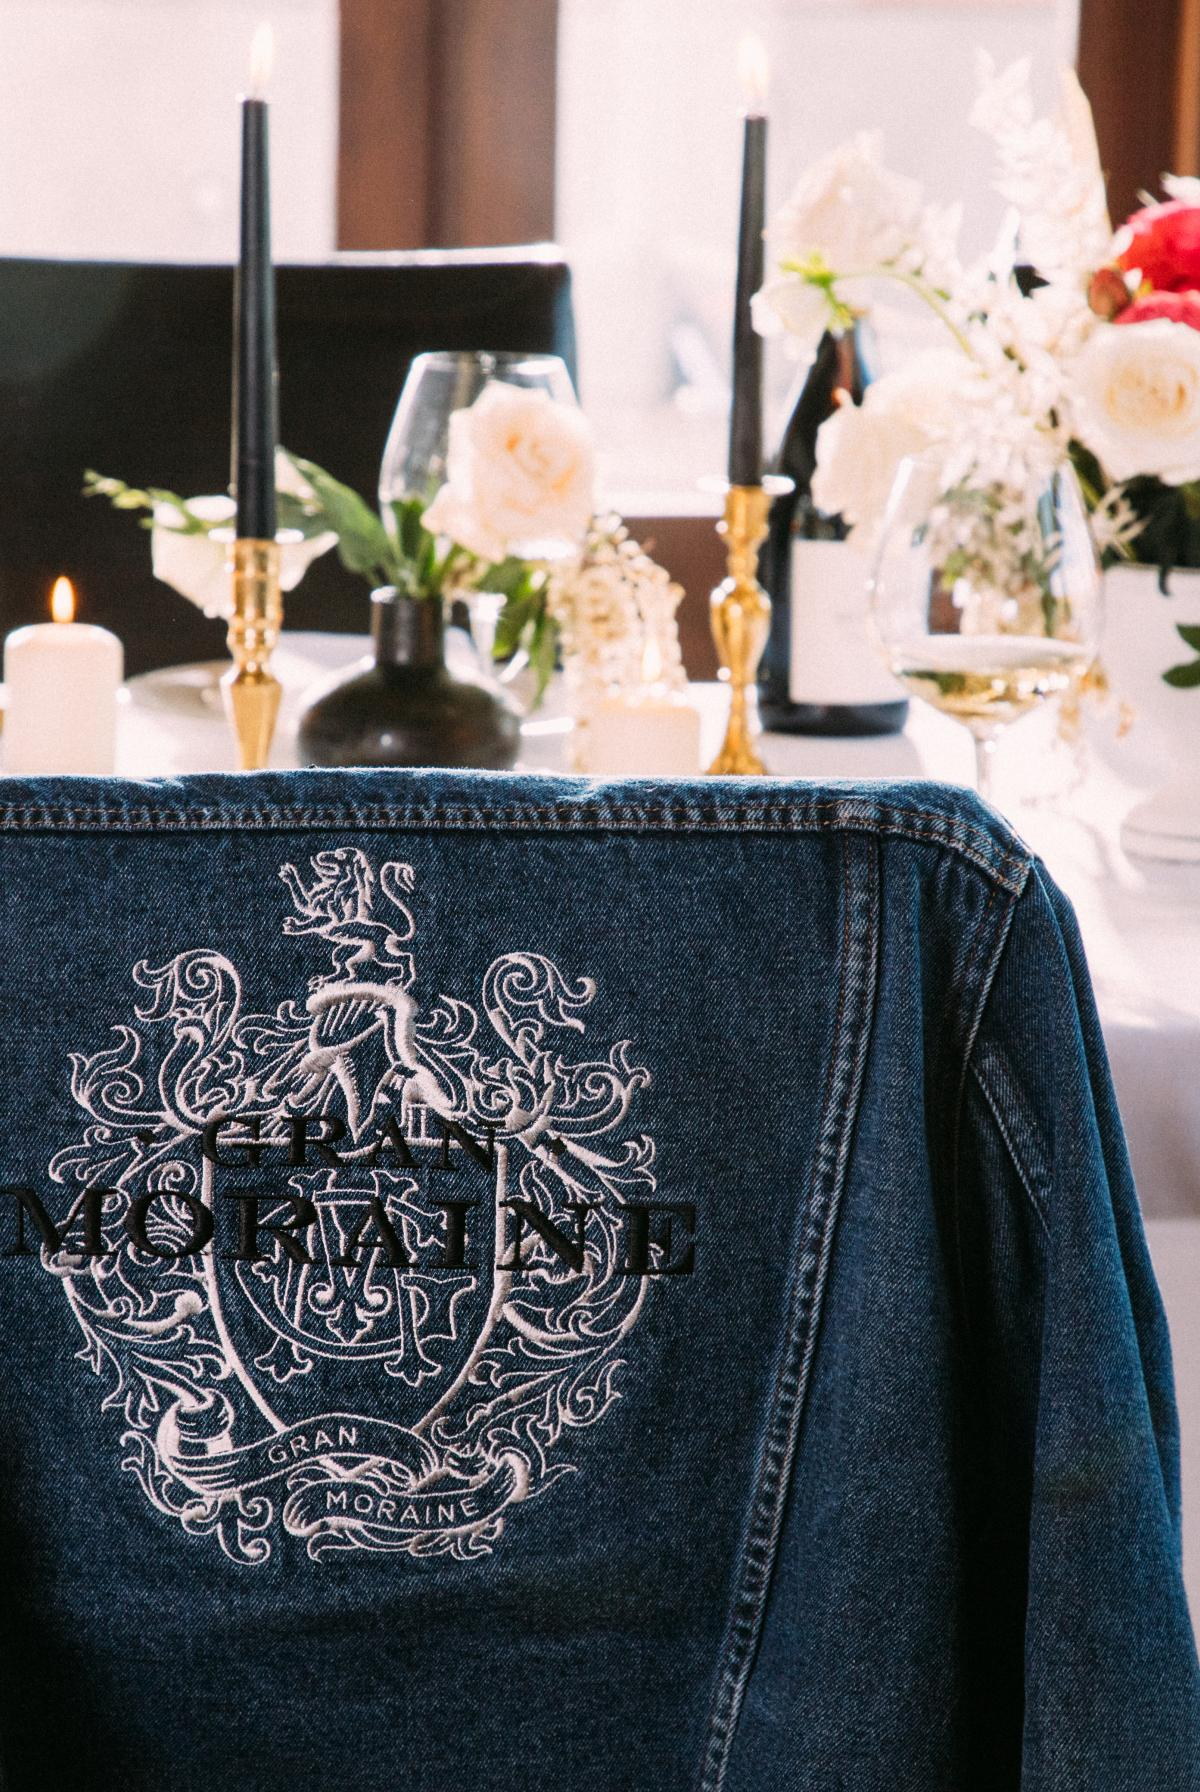 Embroidered jean jacket with Gran Moraine logo on the back of chair at a decorated table